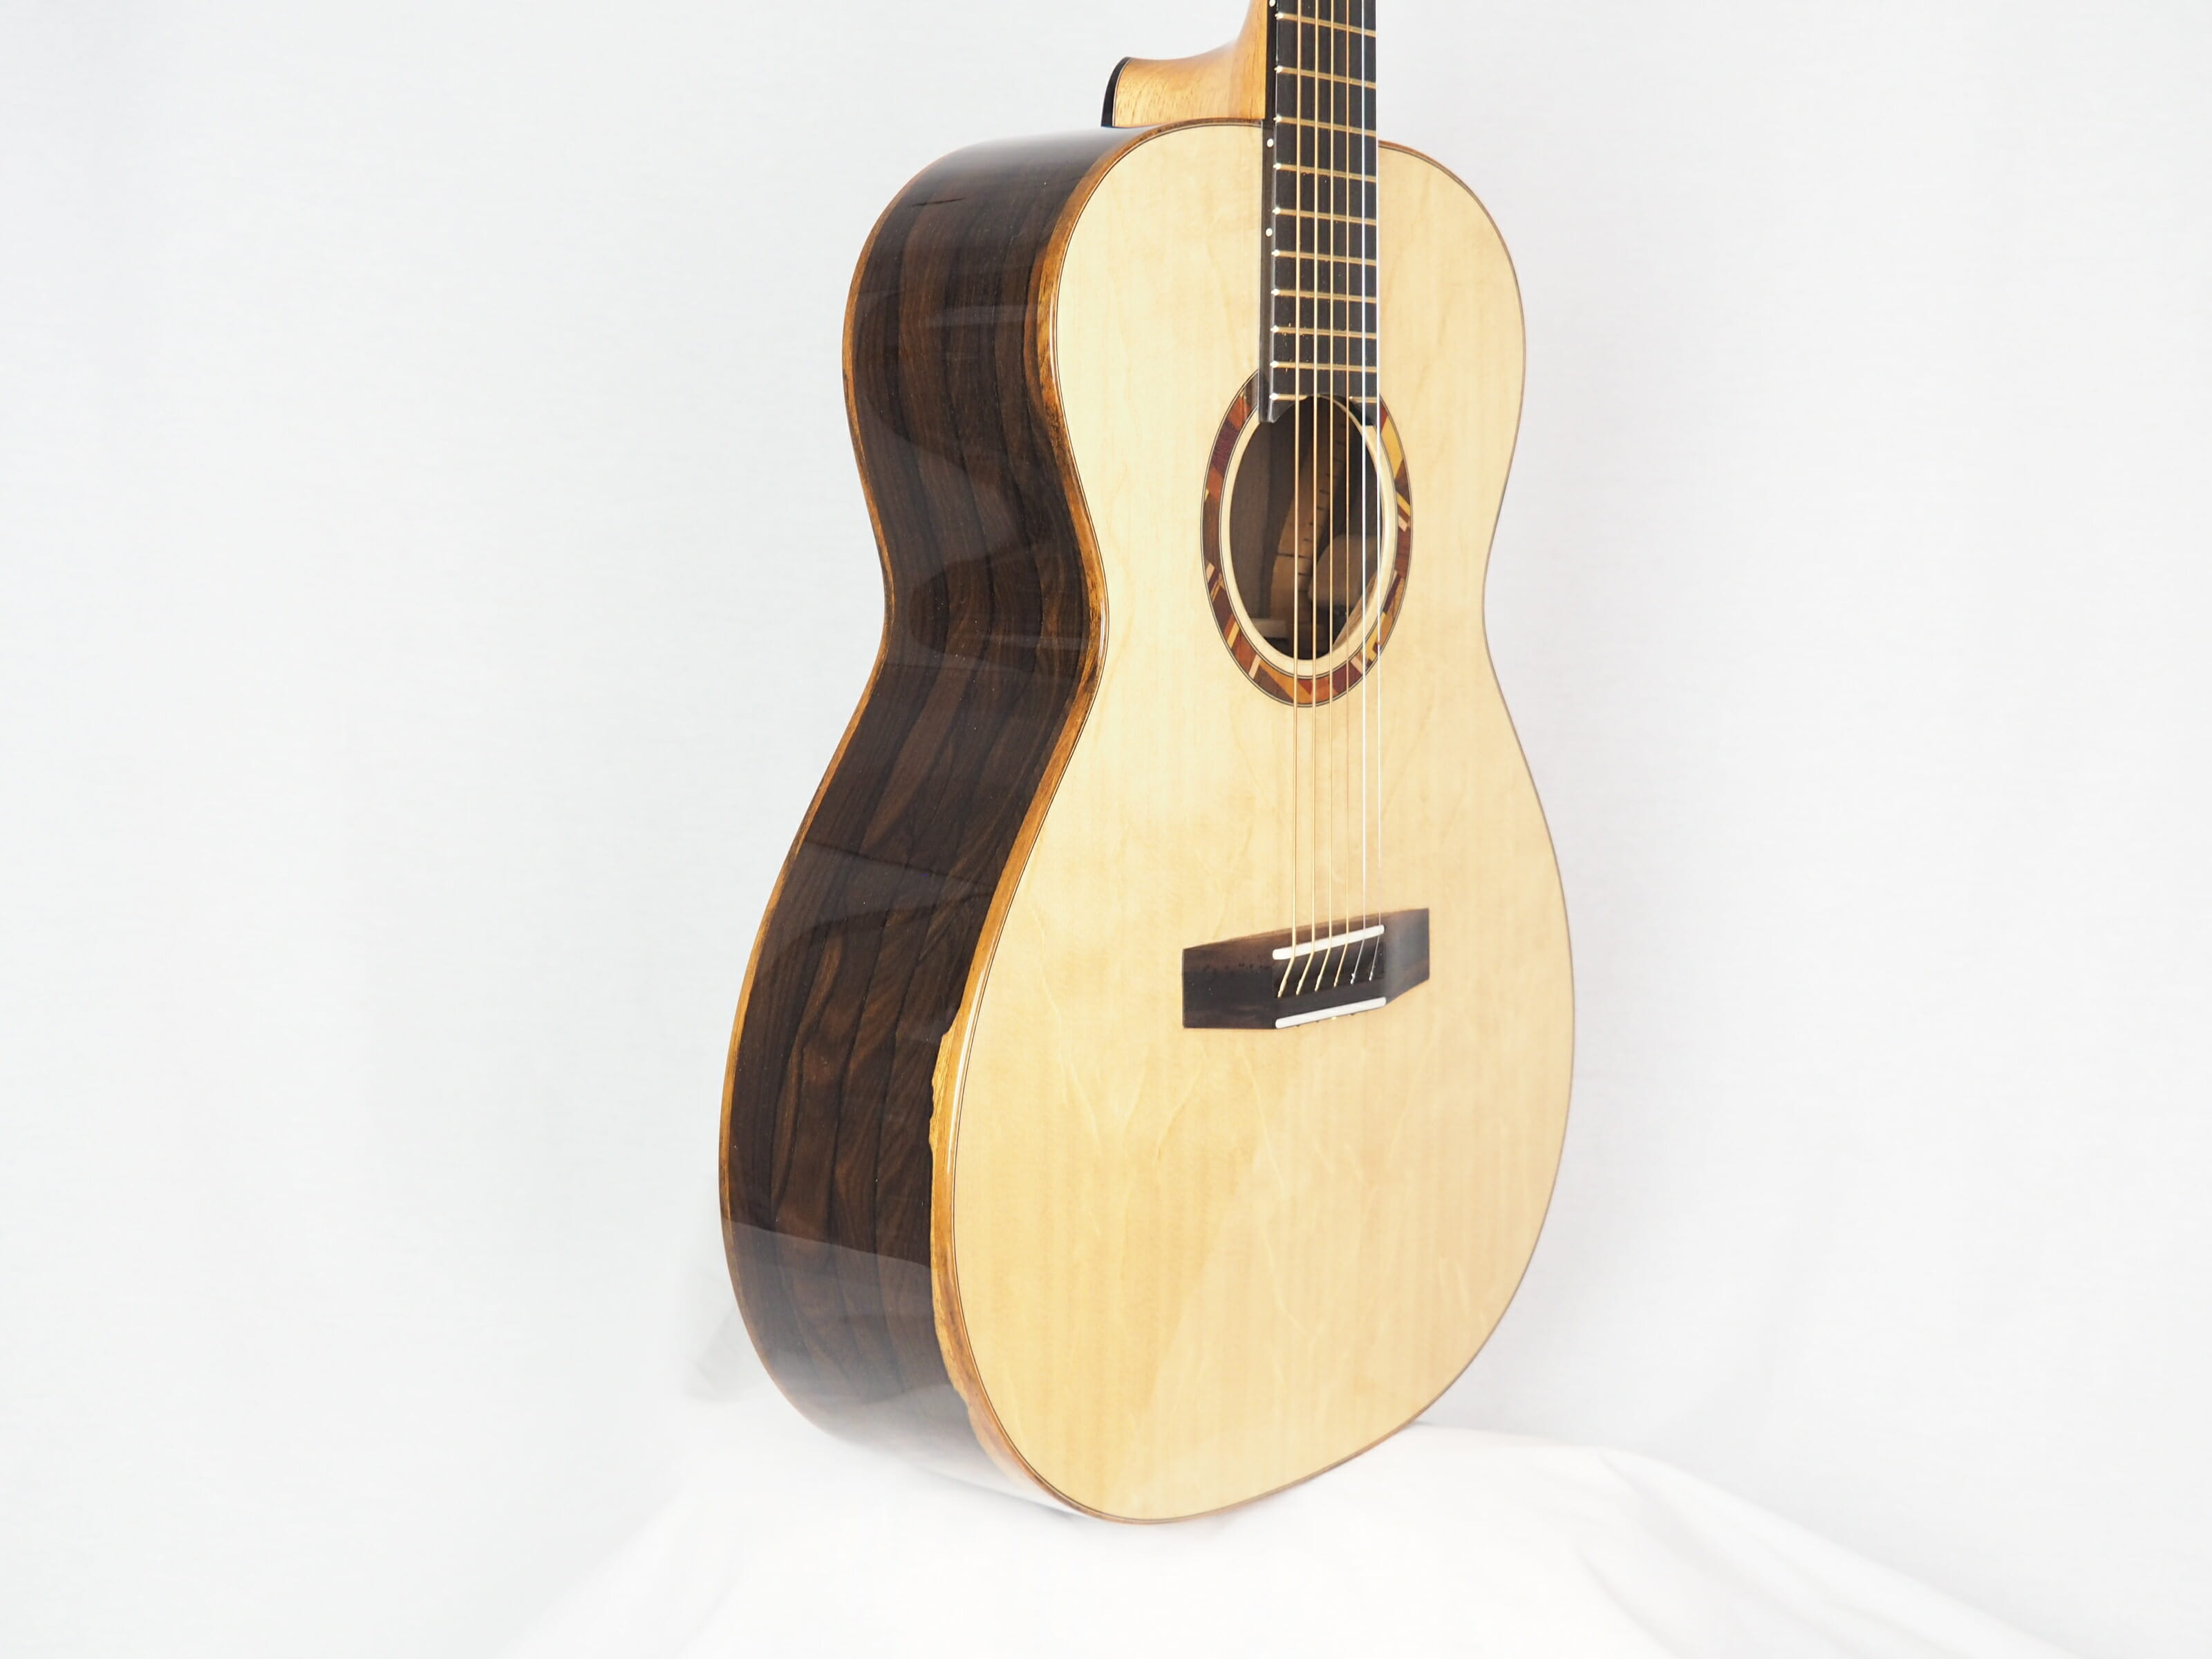 Kevin Muiderman luthier guitare acoustique No 19MUI223-06